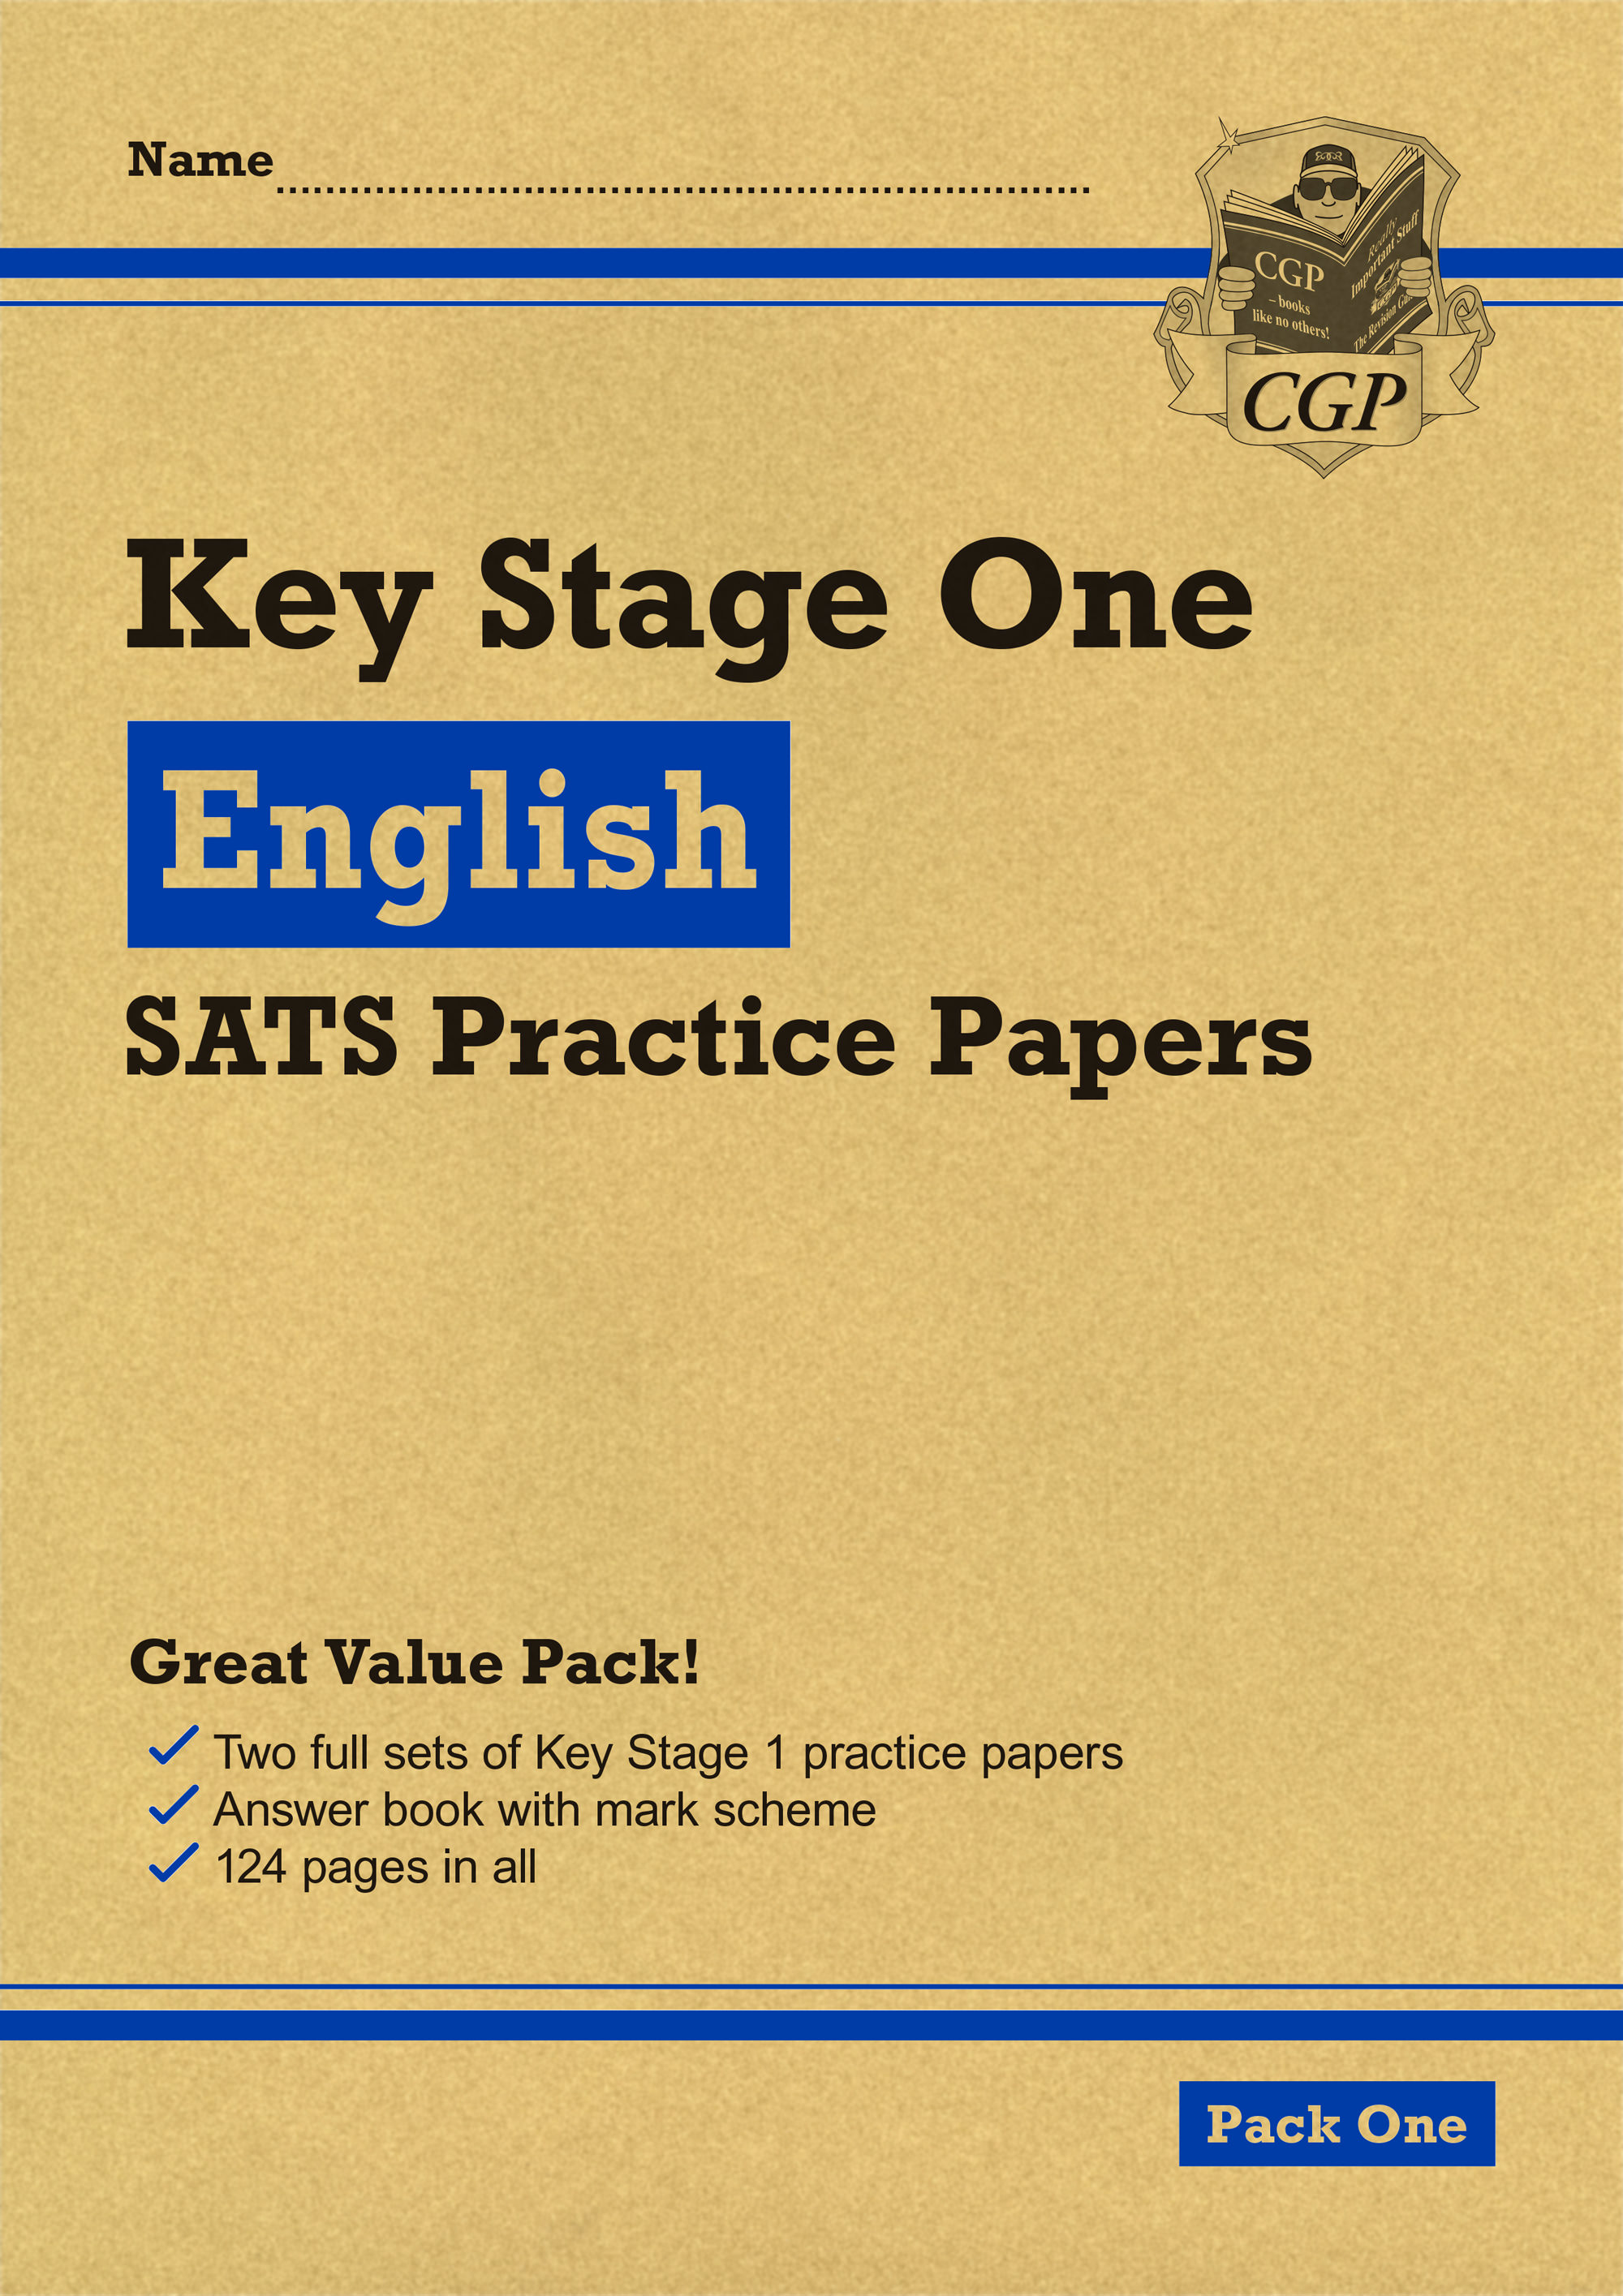 EHEP14 - New KS1 English SATS Practice Papers: Pack 1 (for the 2020 tests)